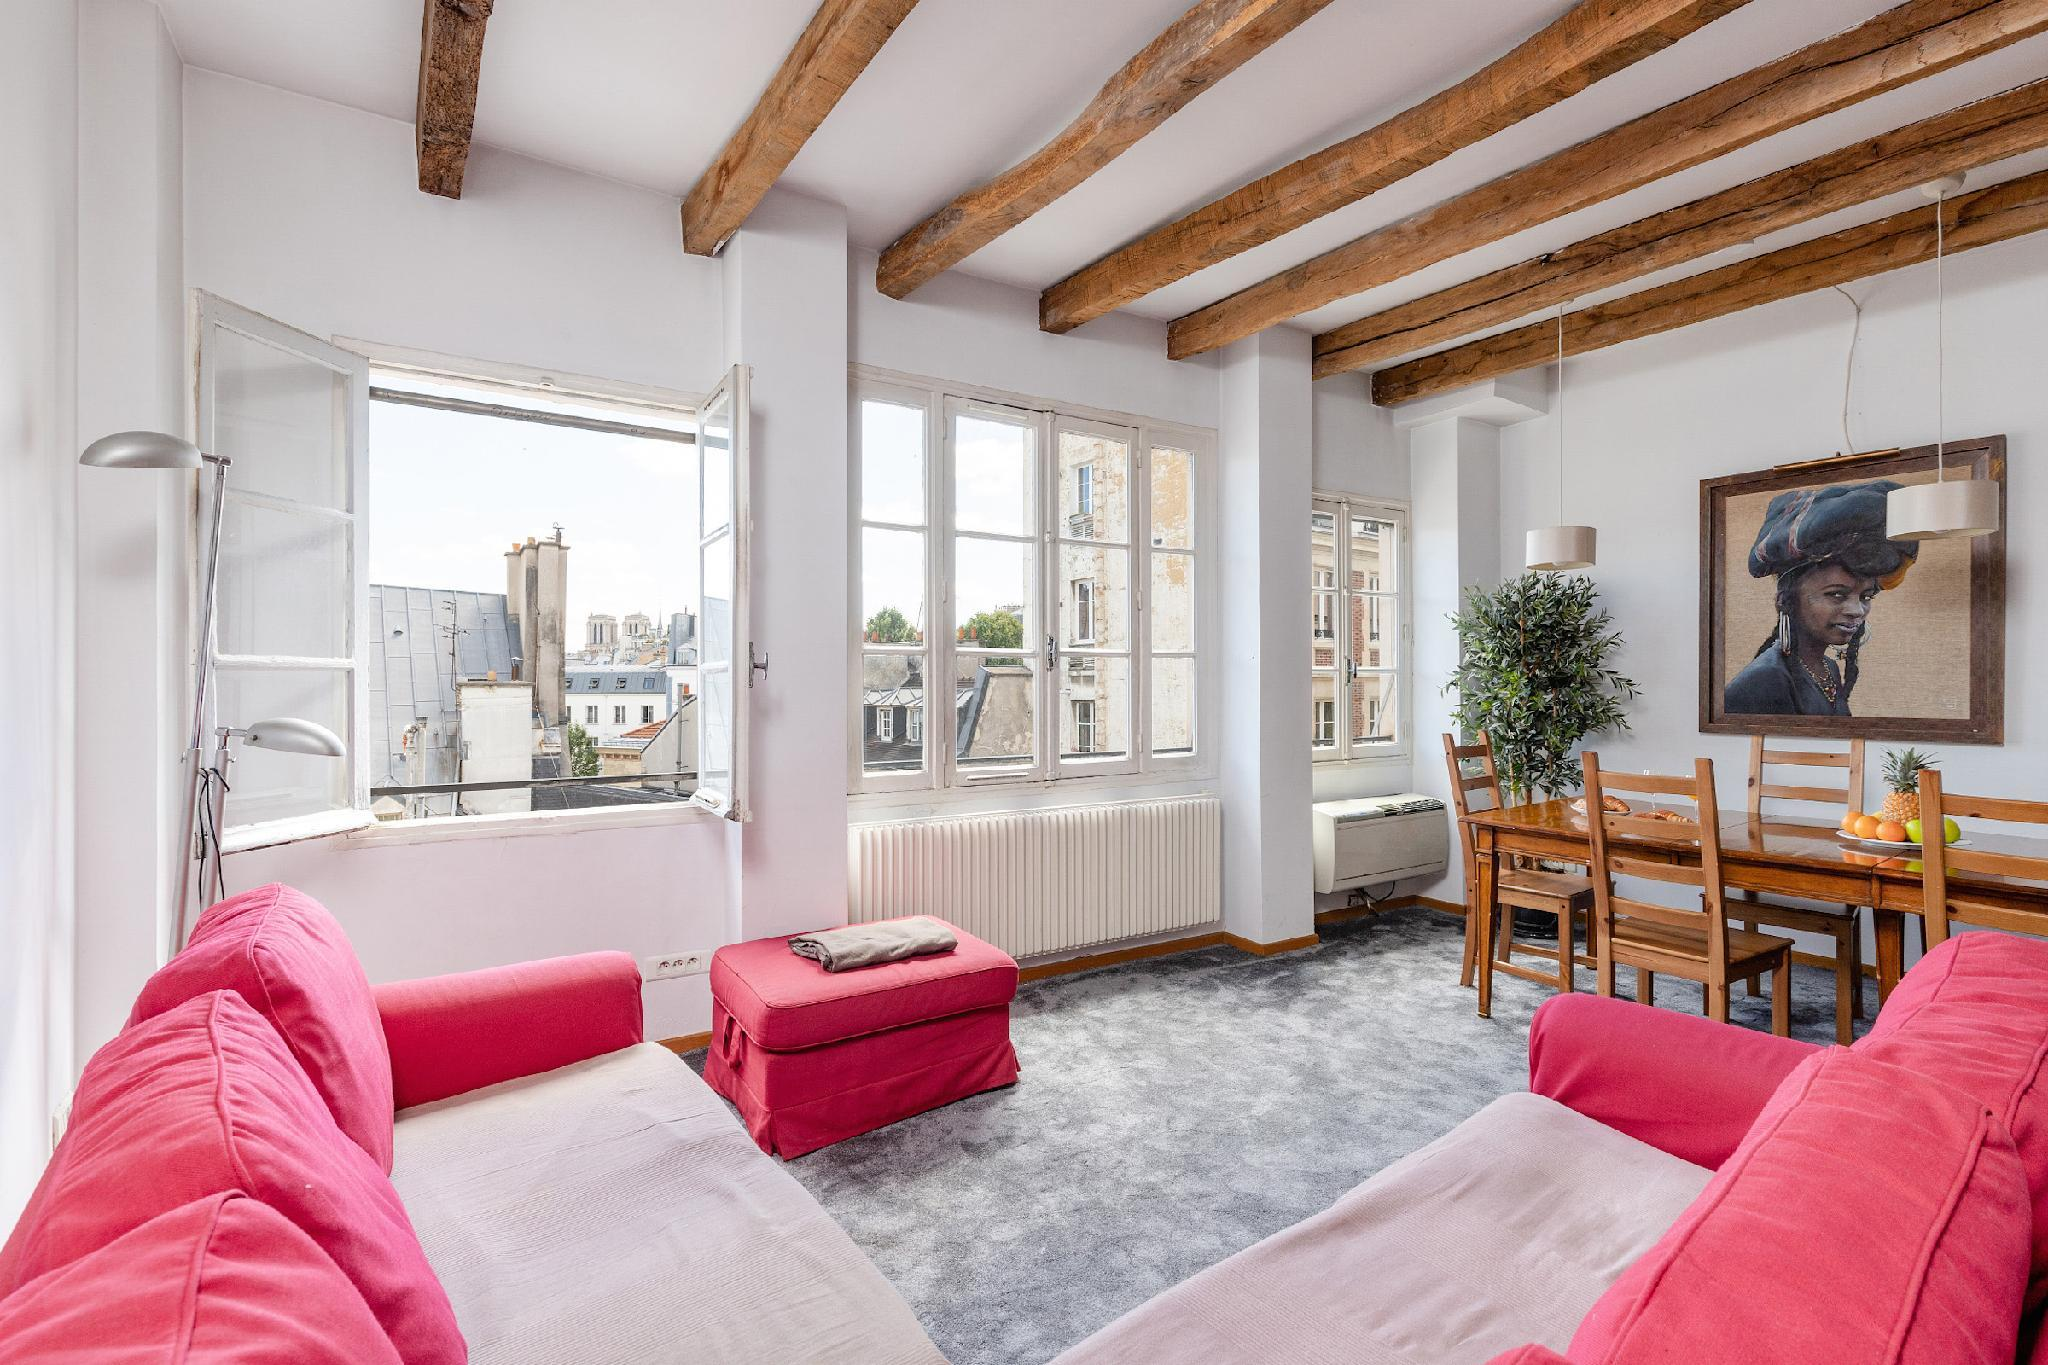 2BR IN THE HEART OF ST GERMAIN -NOTRE DAME VIEW